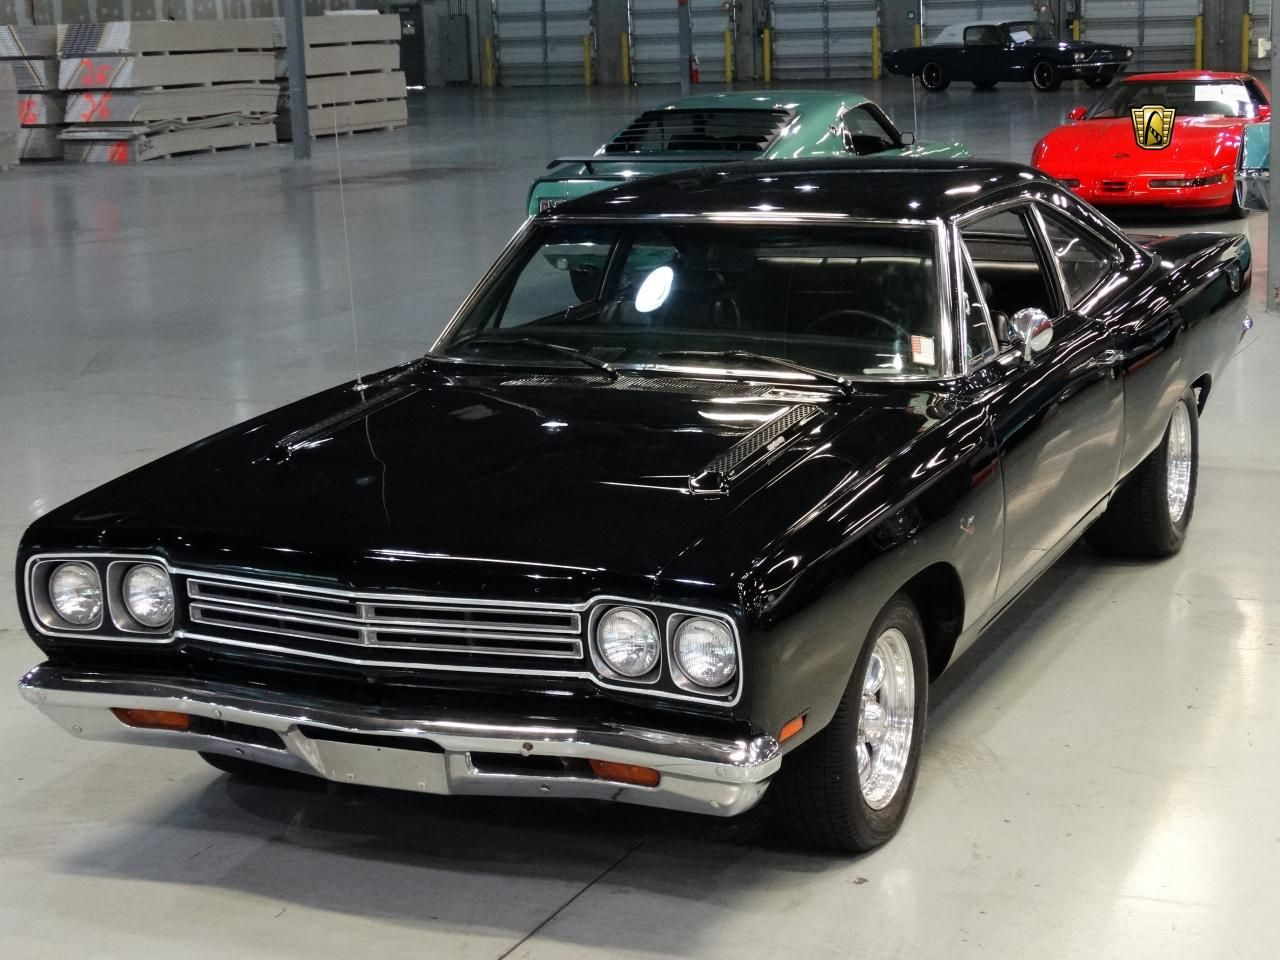 For sale in our Orlando, Florida showroom is a Black 2 Door 1969 ...